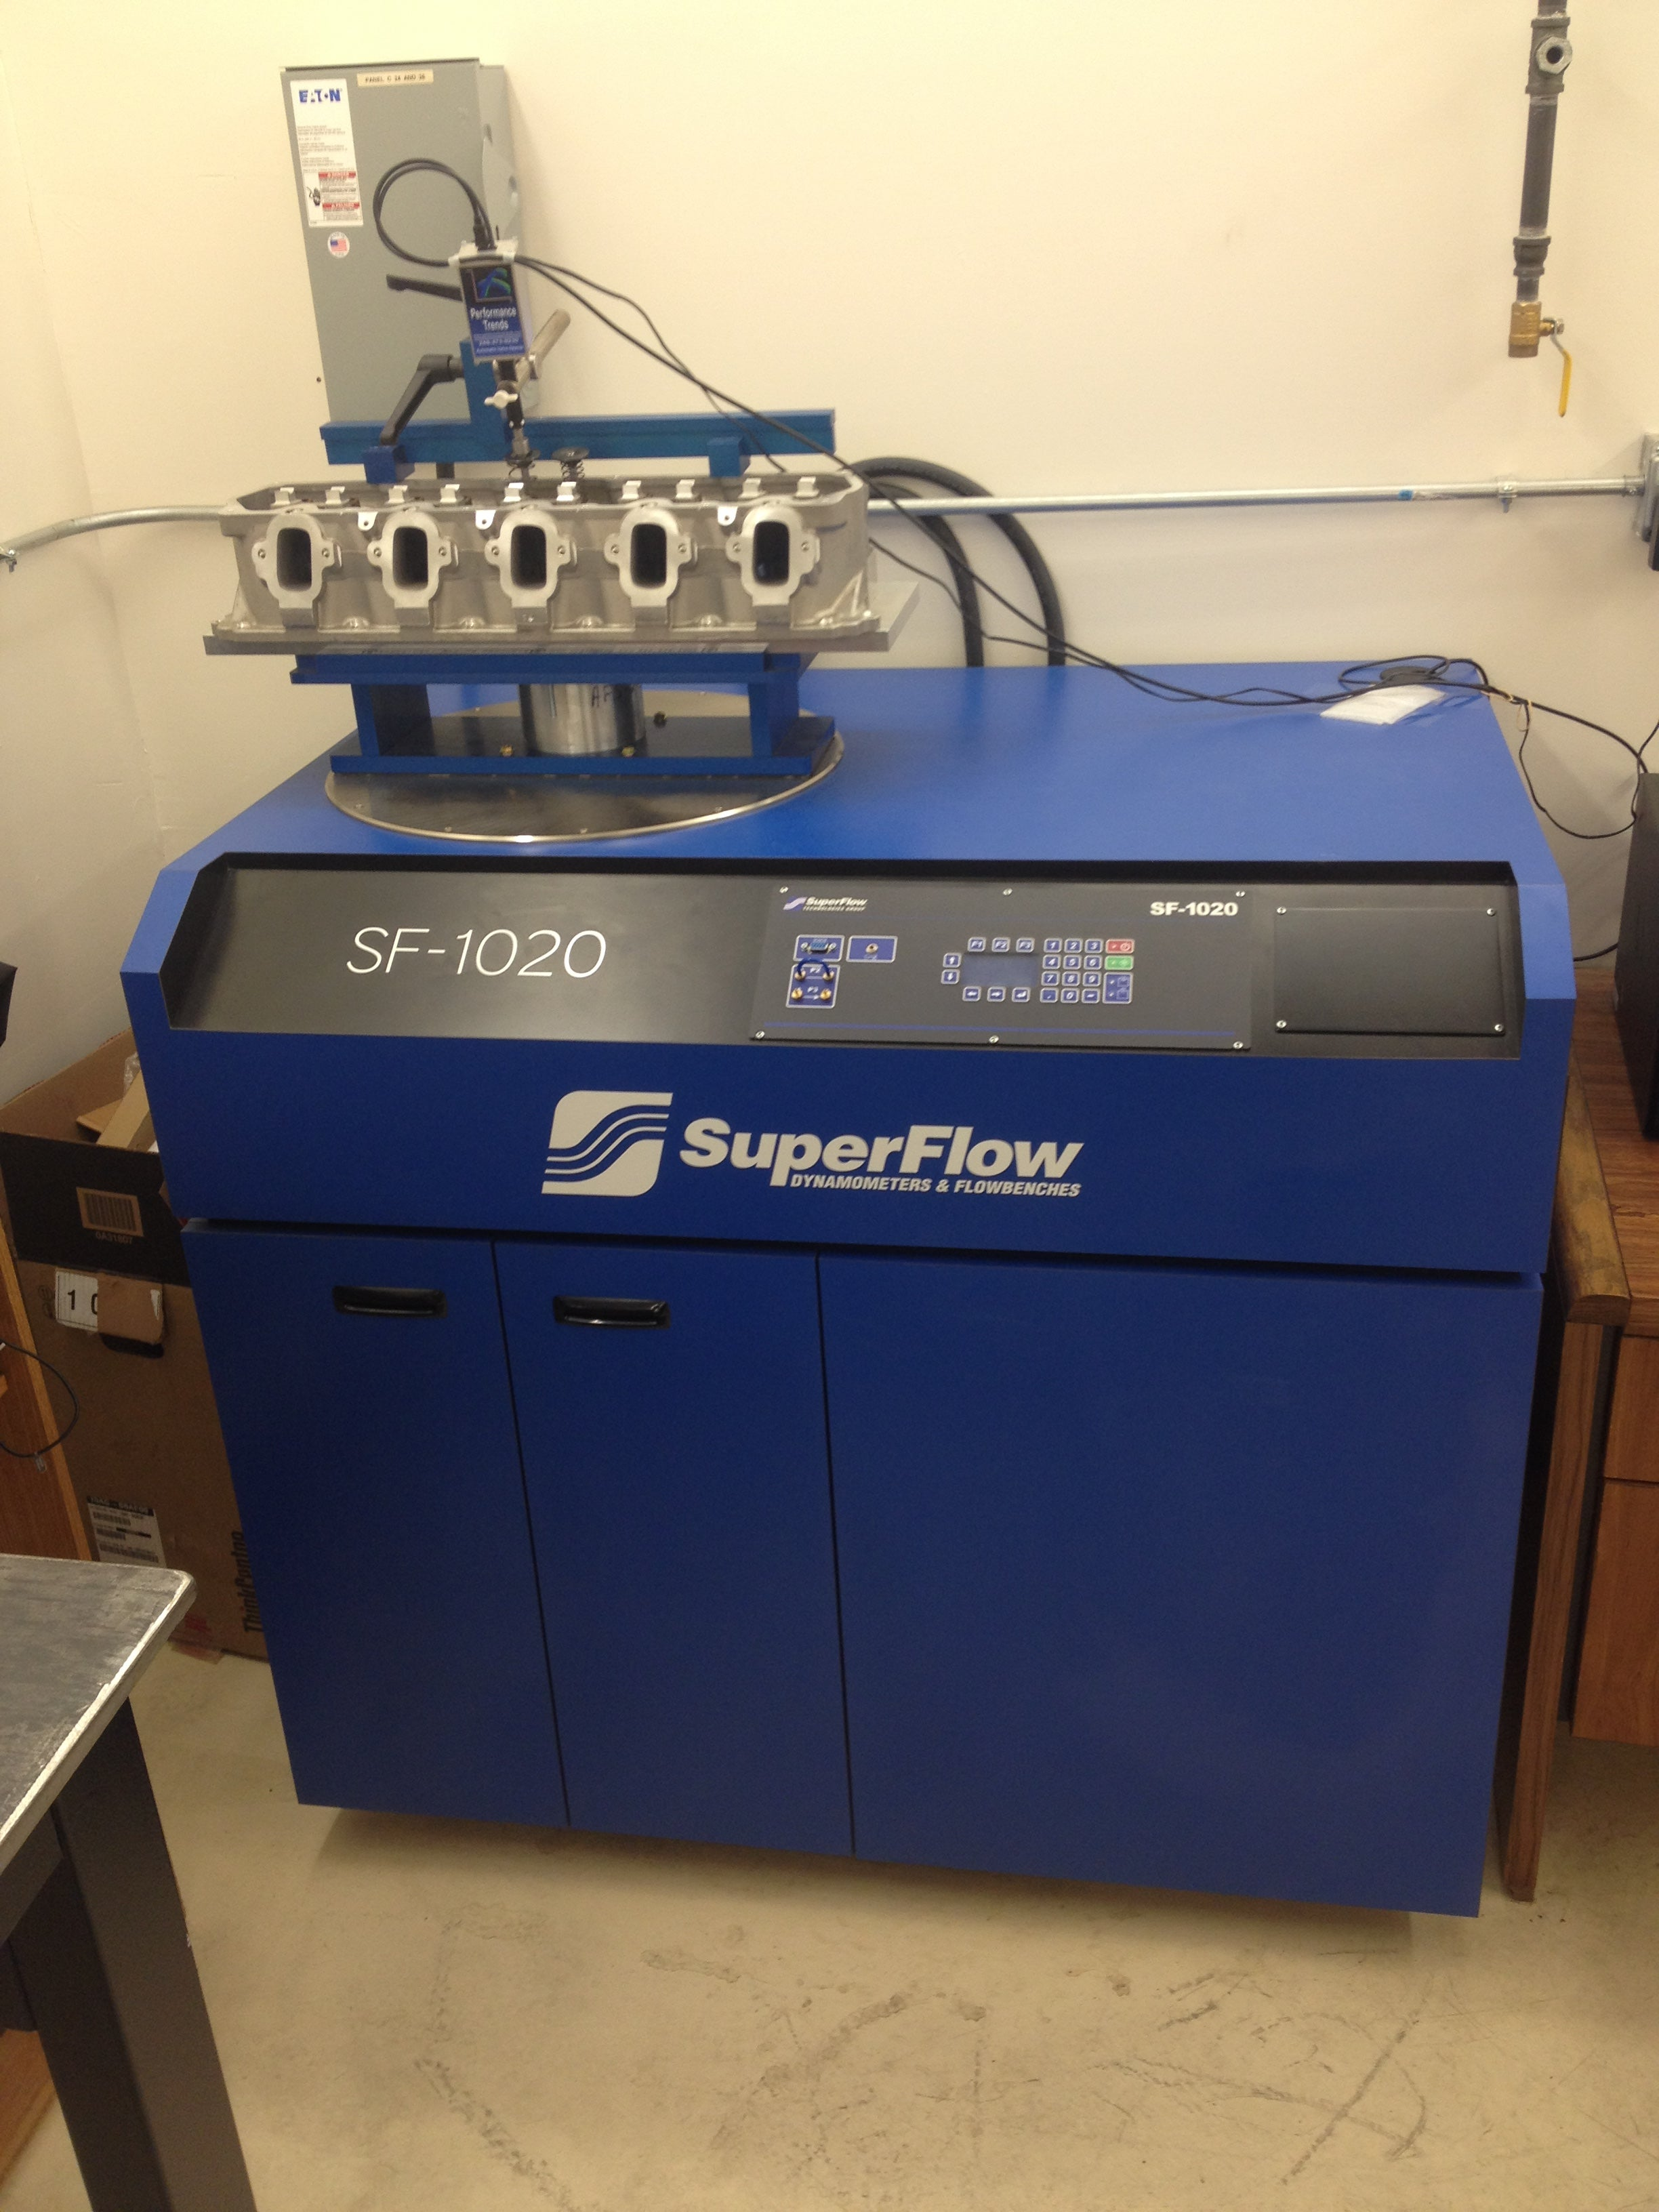 The SF-1020 is SuperFlow's newest high-capacity model. It was designed primarily for engineers and professional engine builders. The SF-1020 is built on the principle that more is better.<br> If you test at higher pressures, you will learn some things you wouldn't learn at lower pressures, only quicker and with greater accuracy.